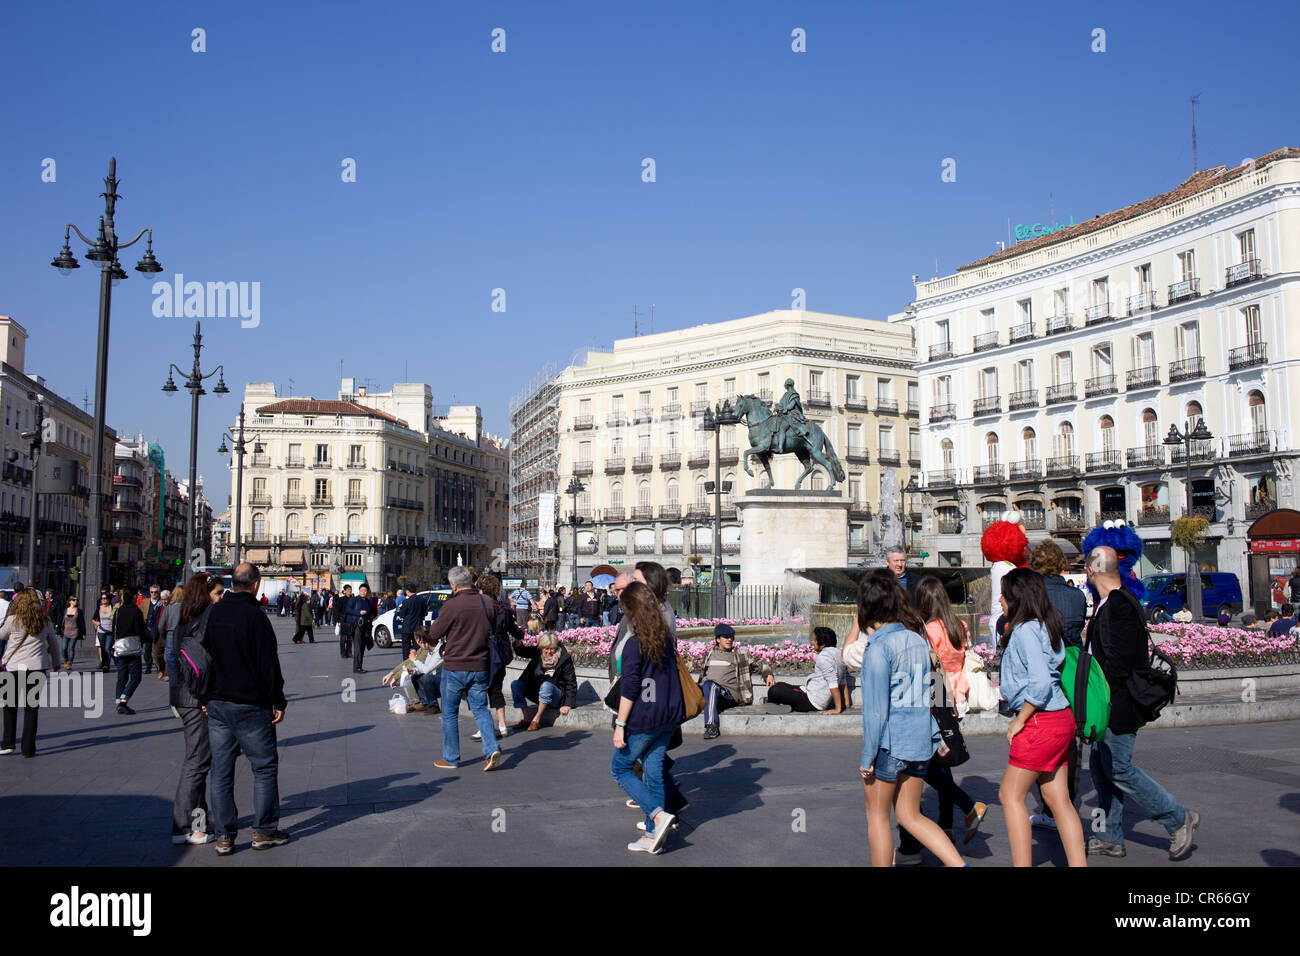 Local people and tourists on busy puerta del sol in madrid for Plaza puerta del sol madrid spain